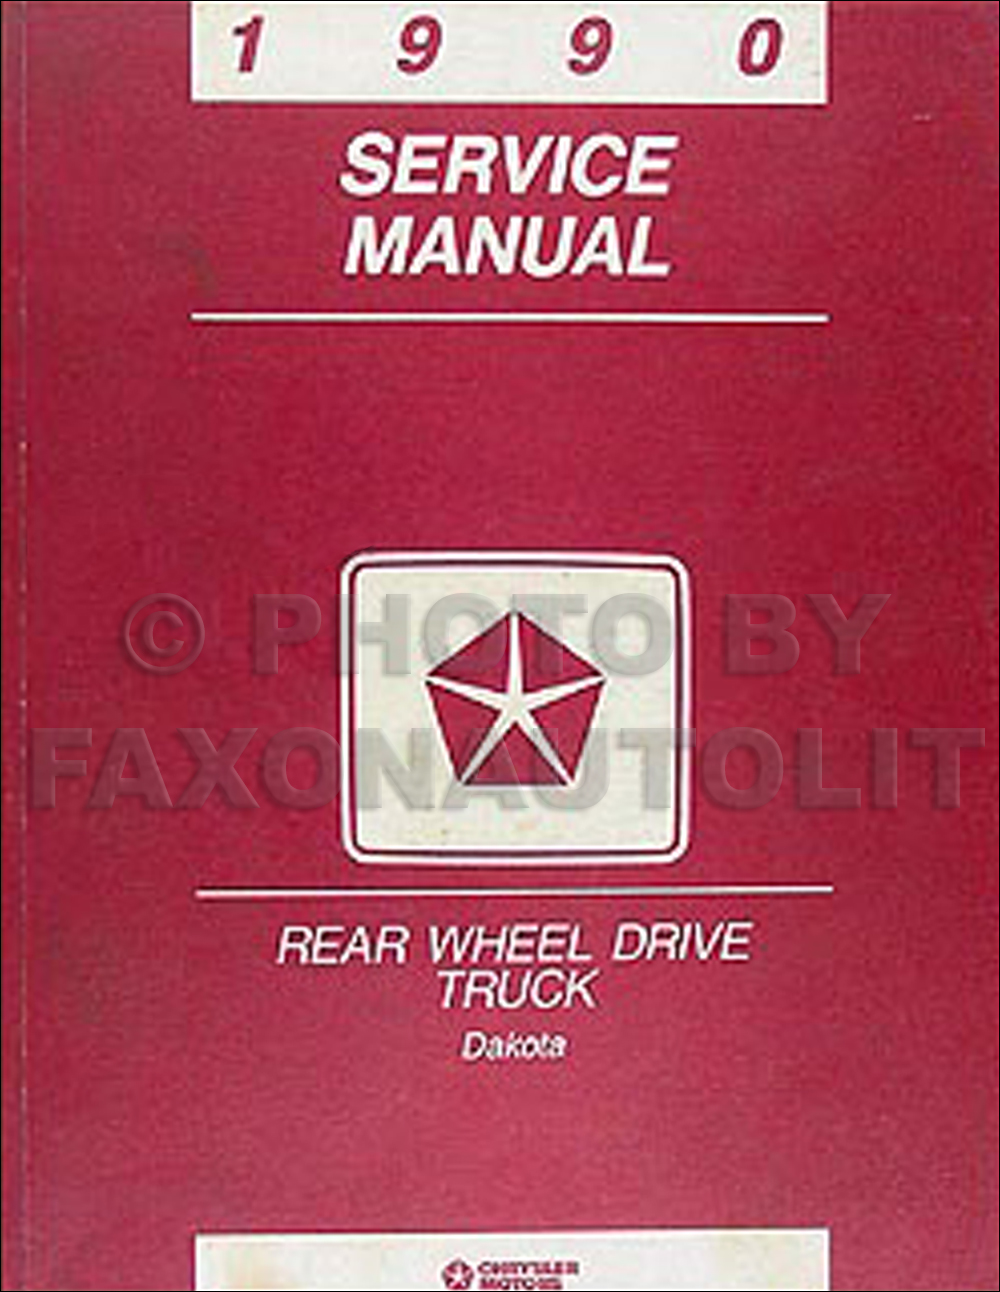 1990 Dodge Dakota Repair Shop Manual Original